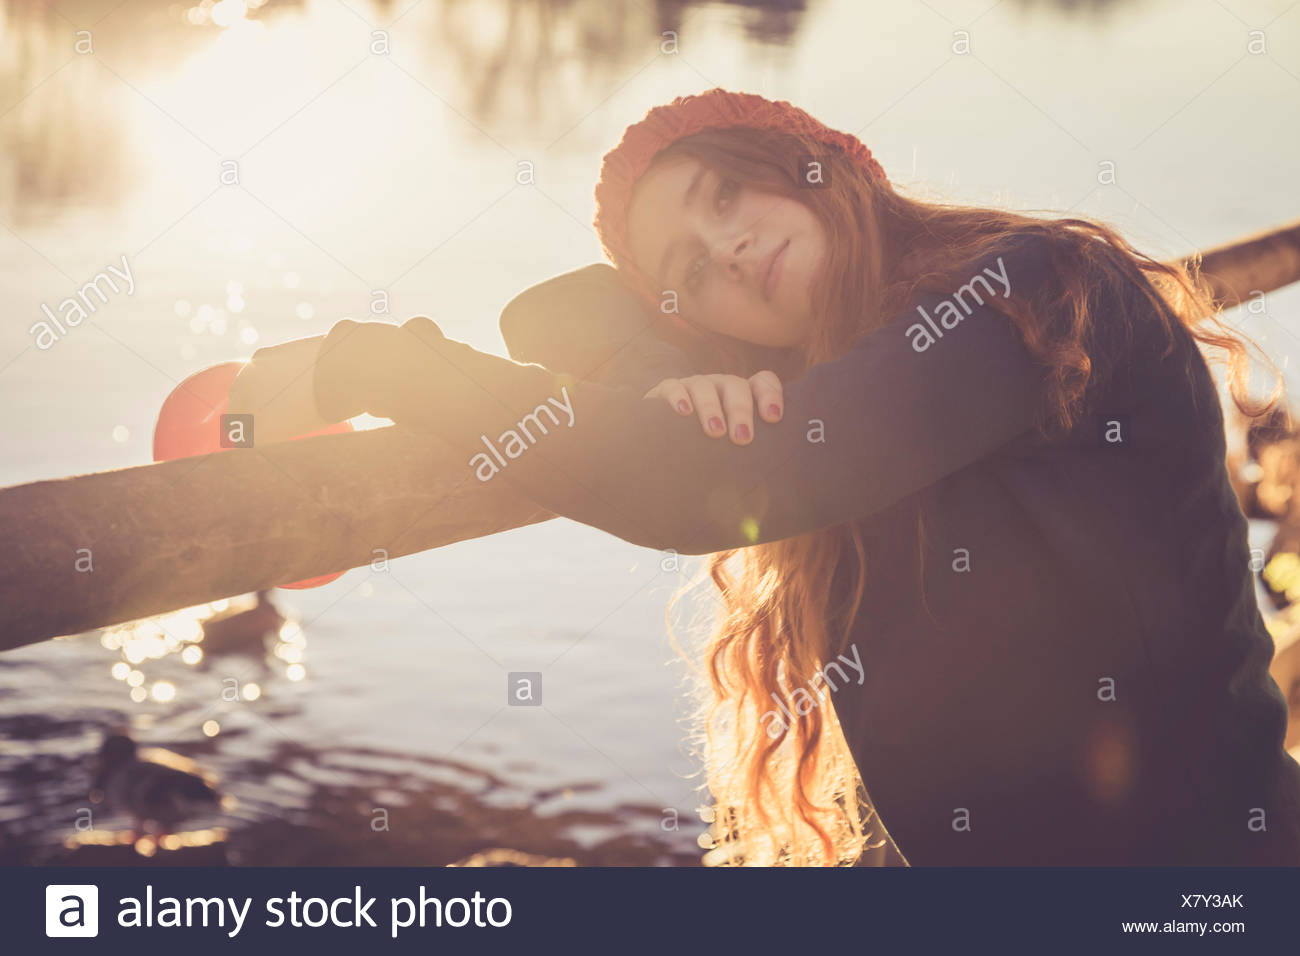 Teenage girl leaning on tree trunk in autumn - Stock Image